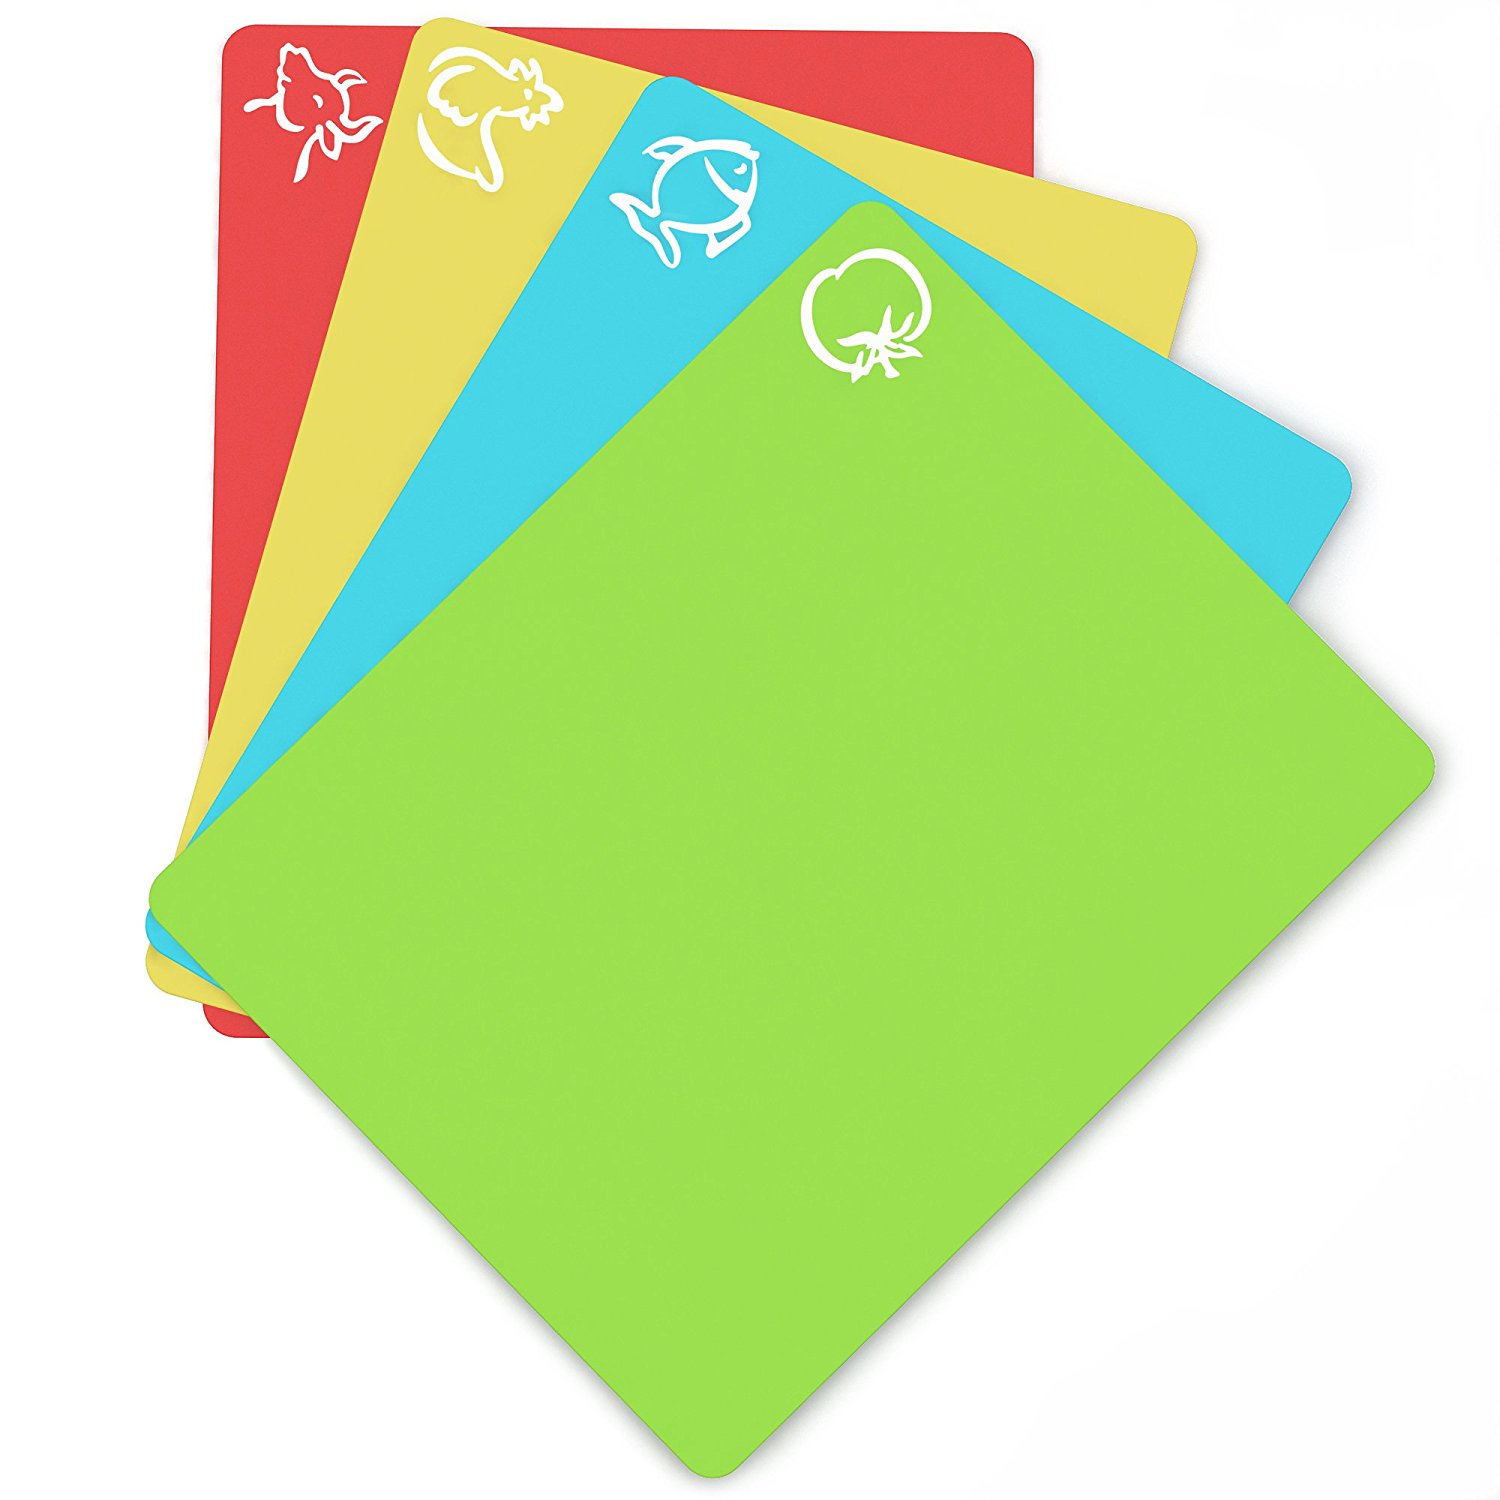 """Flexible Plastic Non-slip Chopping Block - Cutting Board - Cutting Mats With Food Icons Kitchen Tools (Set Of 4) 15""""x 12"""" 1"""